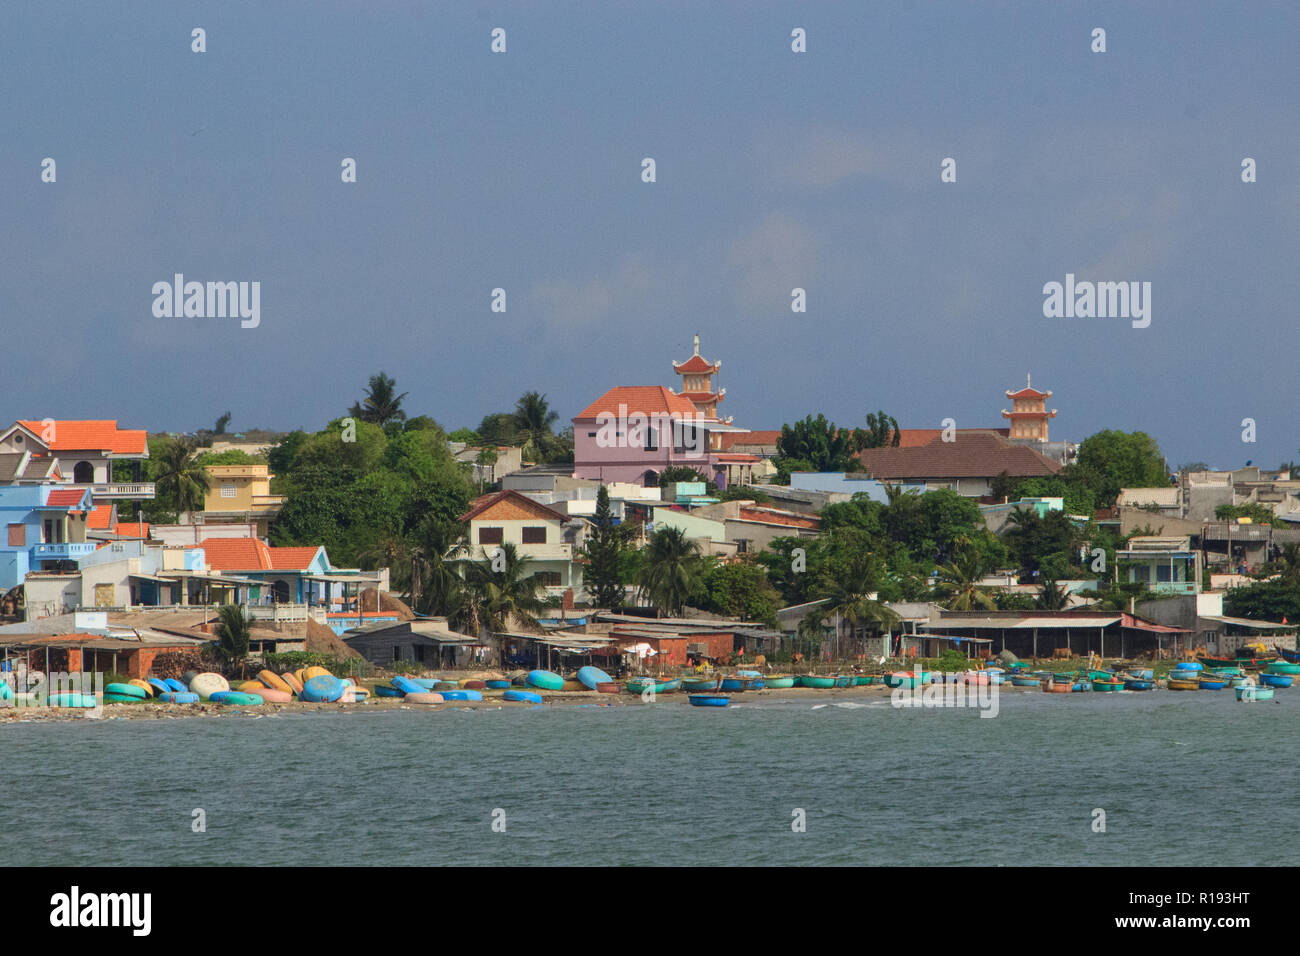 mui ne coast view of the village with fisher boats, vietnam - Stock Image